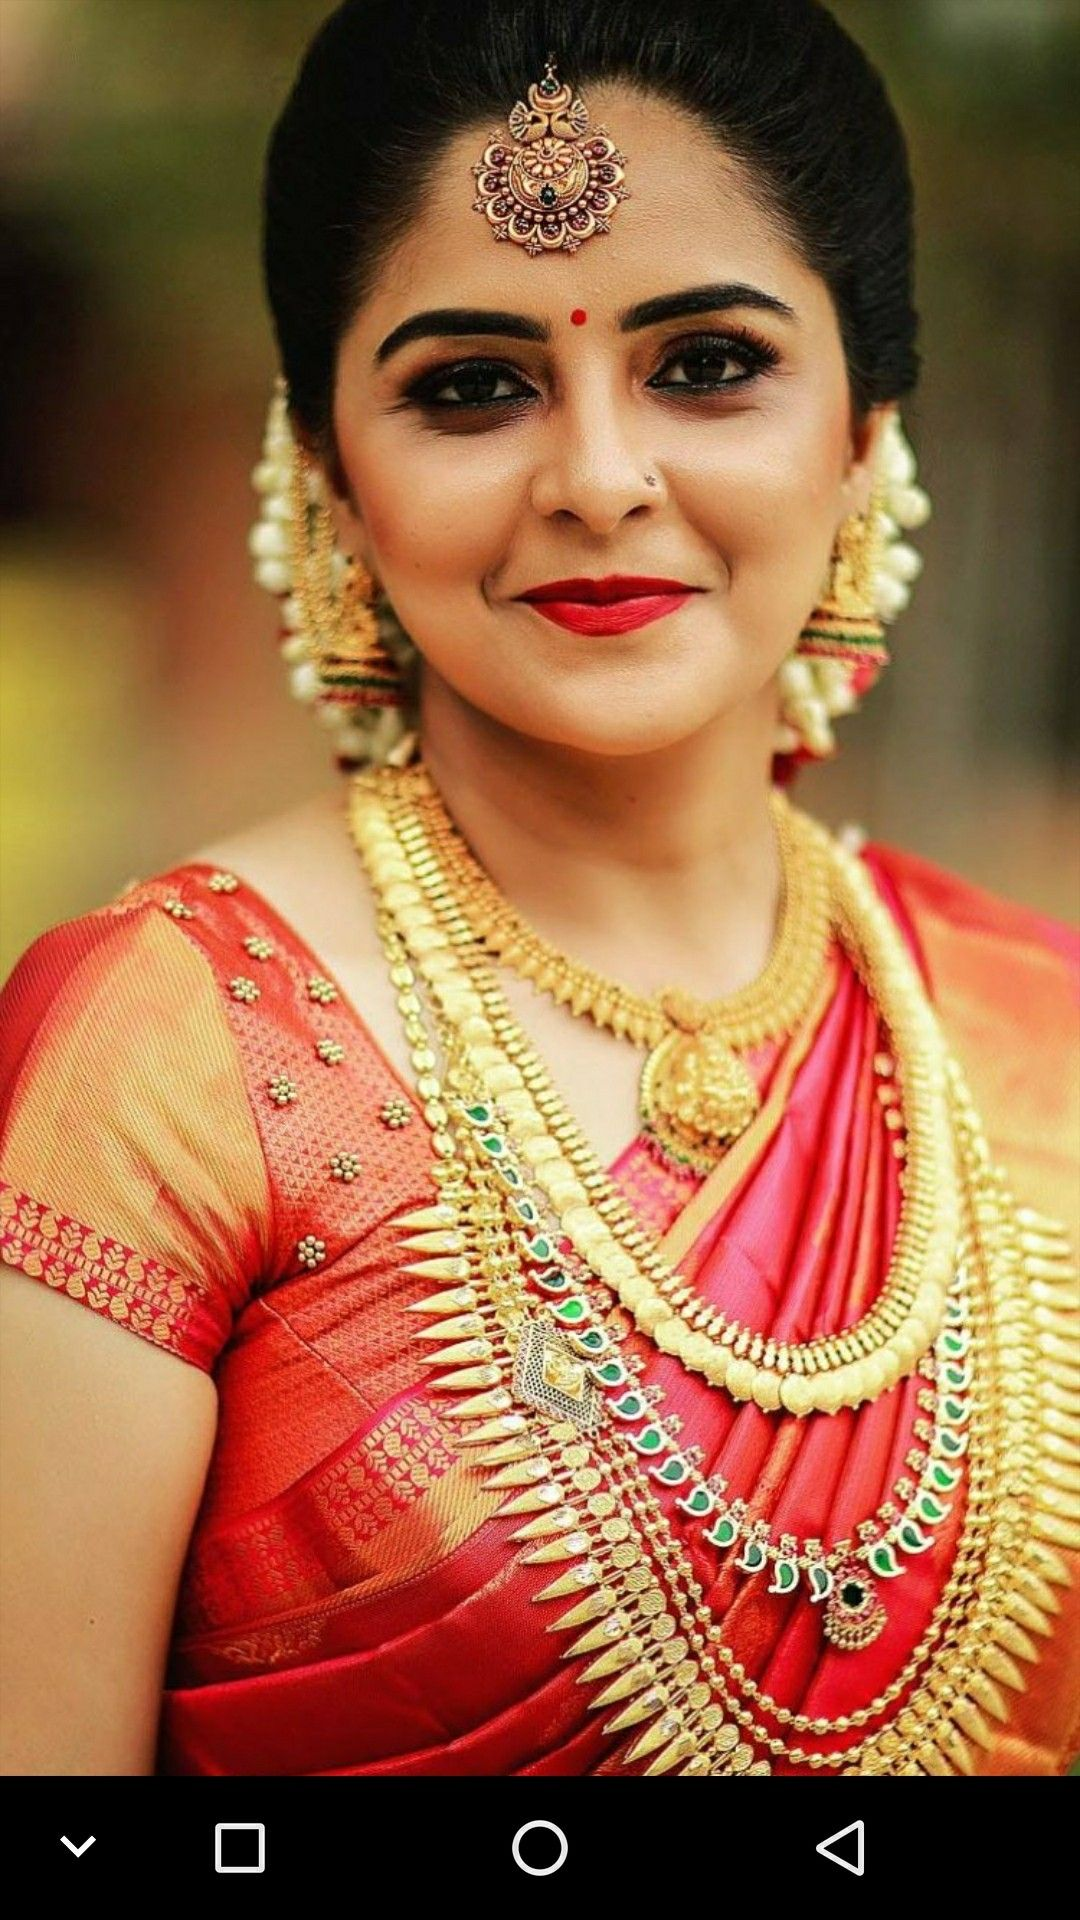 Pin by Riya Joseph on beautiful | Bridal hairstyle indian wedding, Kerala wedding saree ...